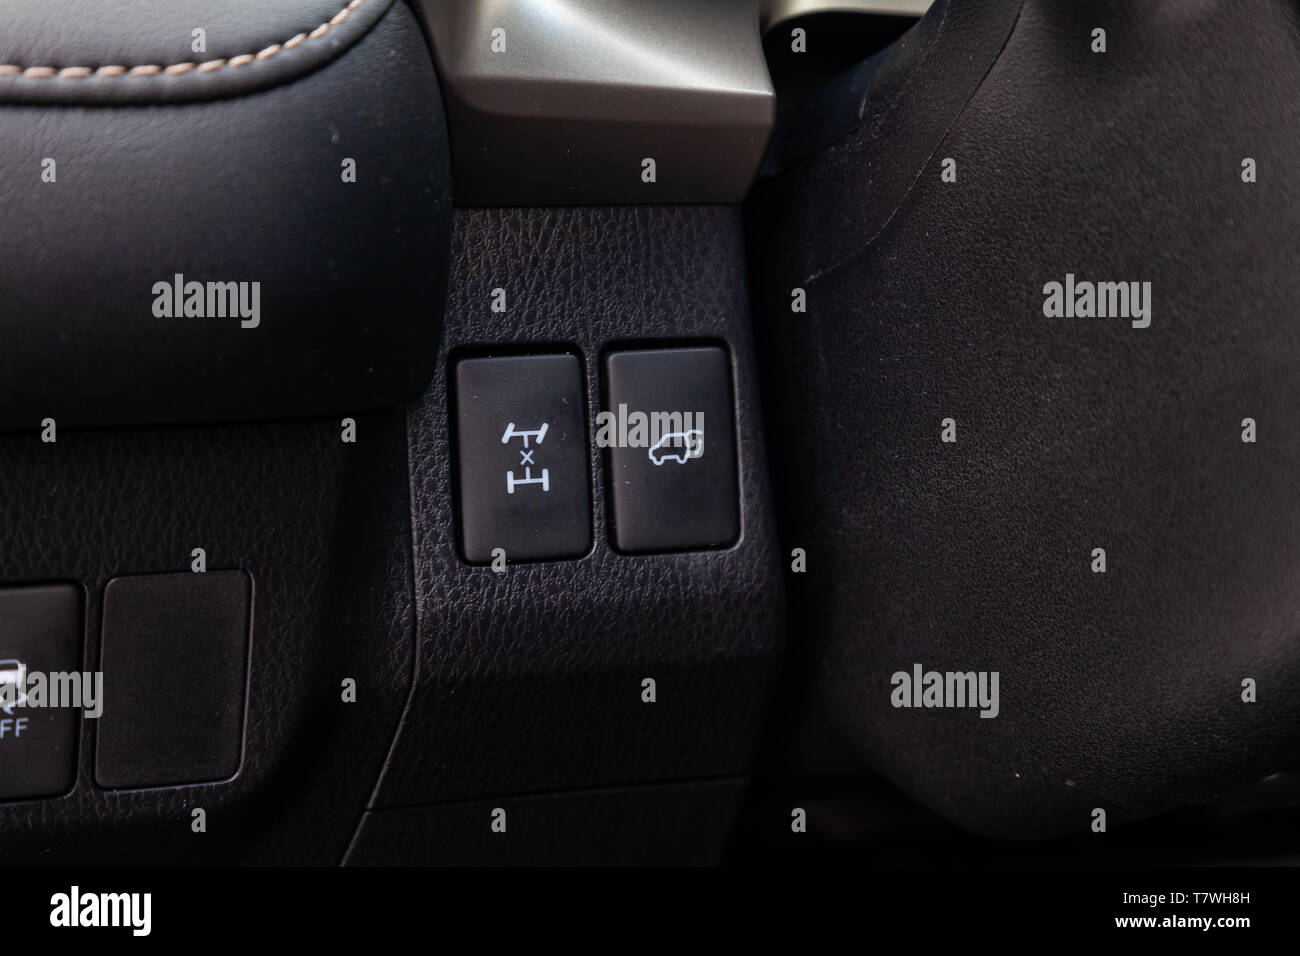 Interior view with electric trunk adjustment button differential lock of luxury very expensive new black car after cleaning in the vehicle repair work - Stock Image